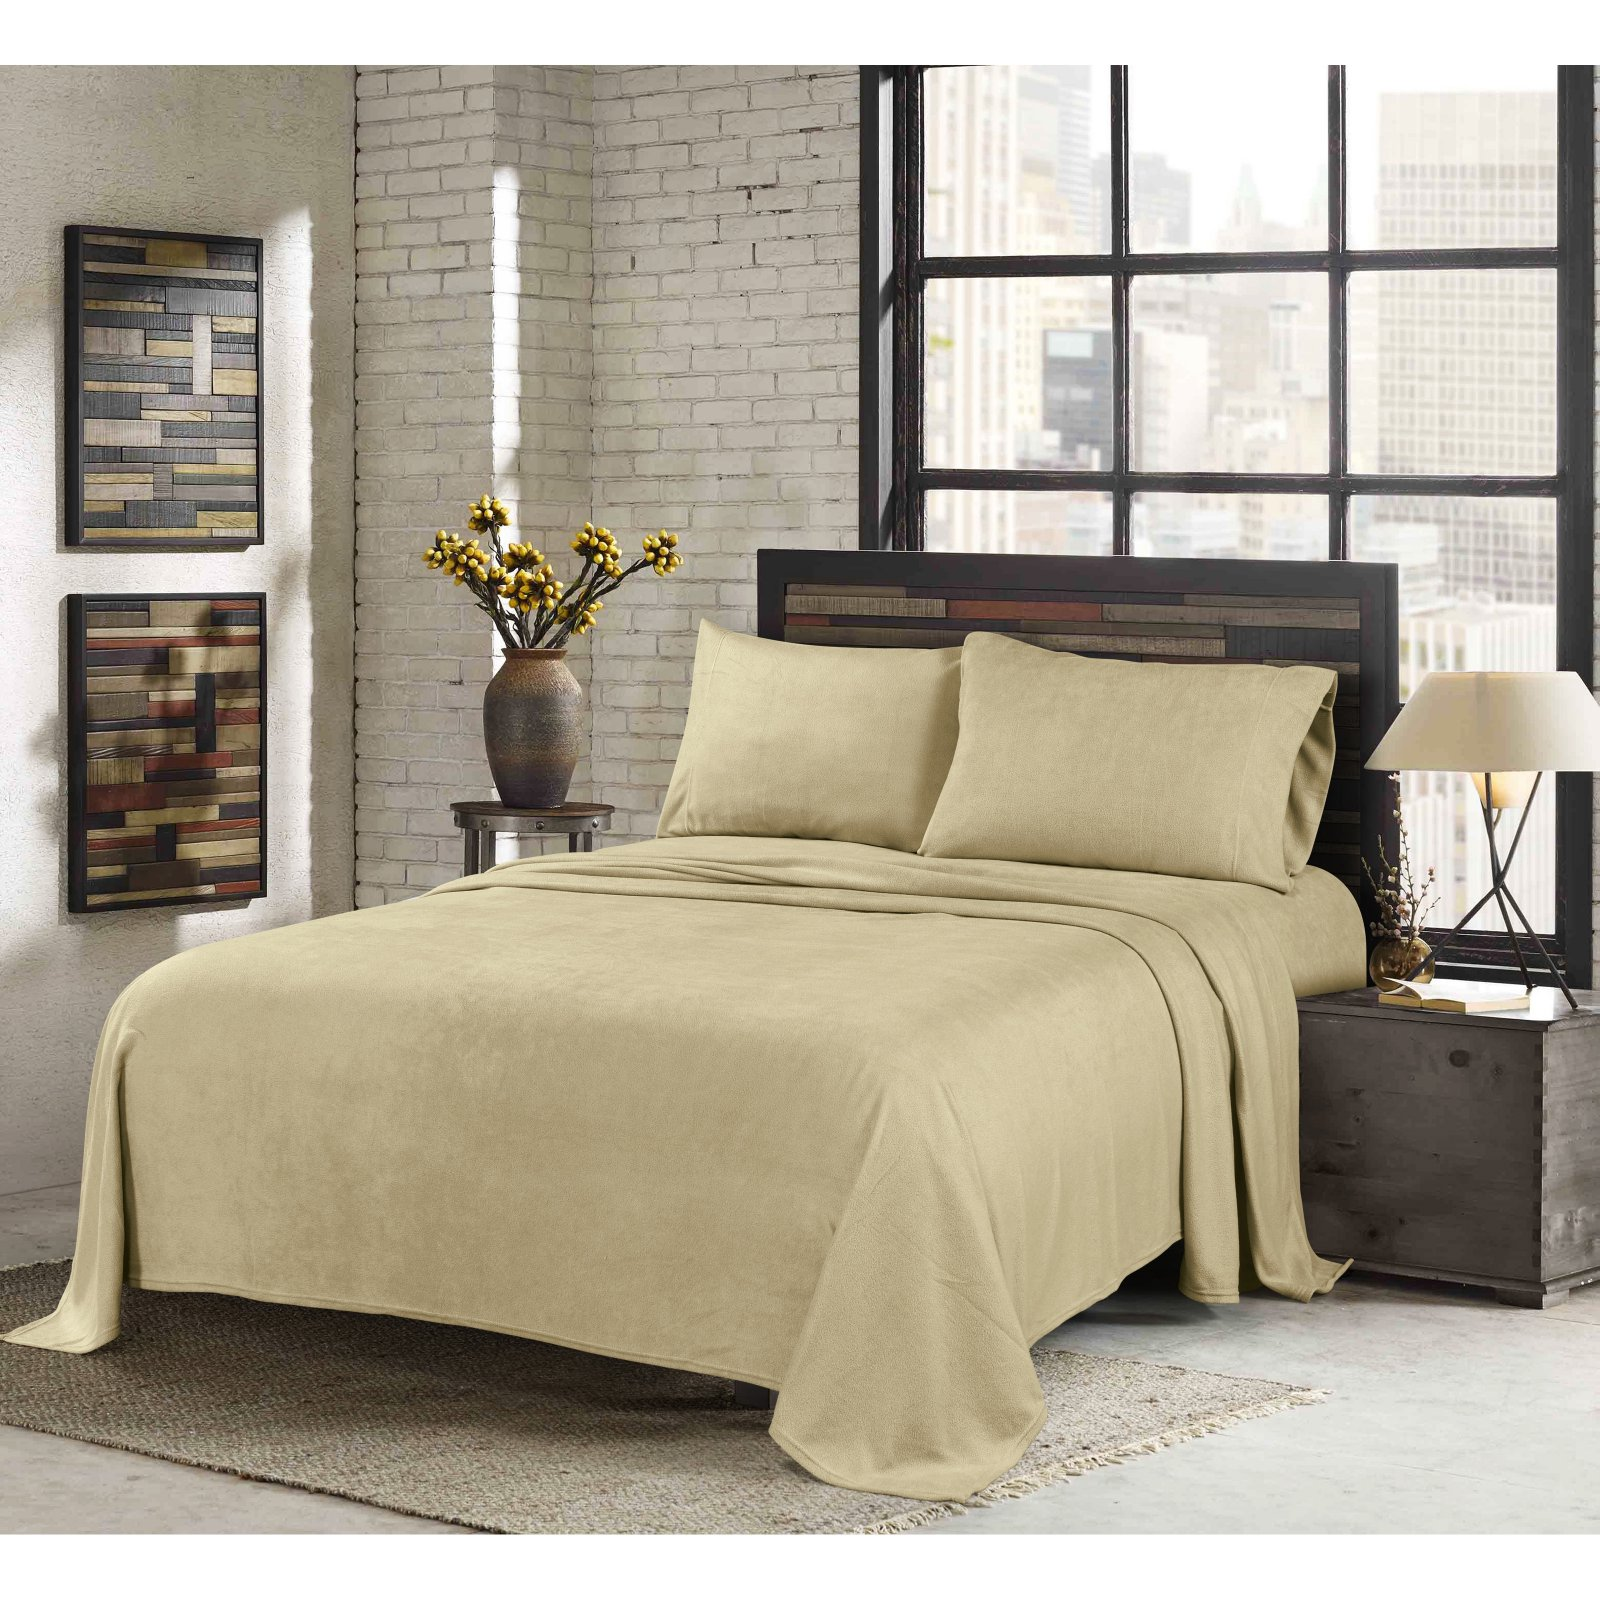 Super Soft Heavyeight Fleece Sheet Set by Sunbeam